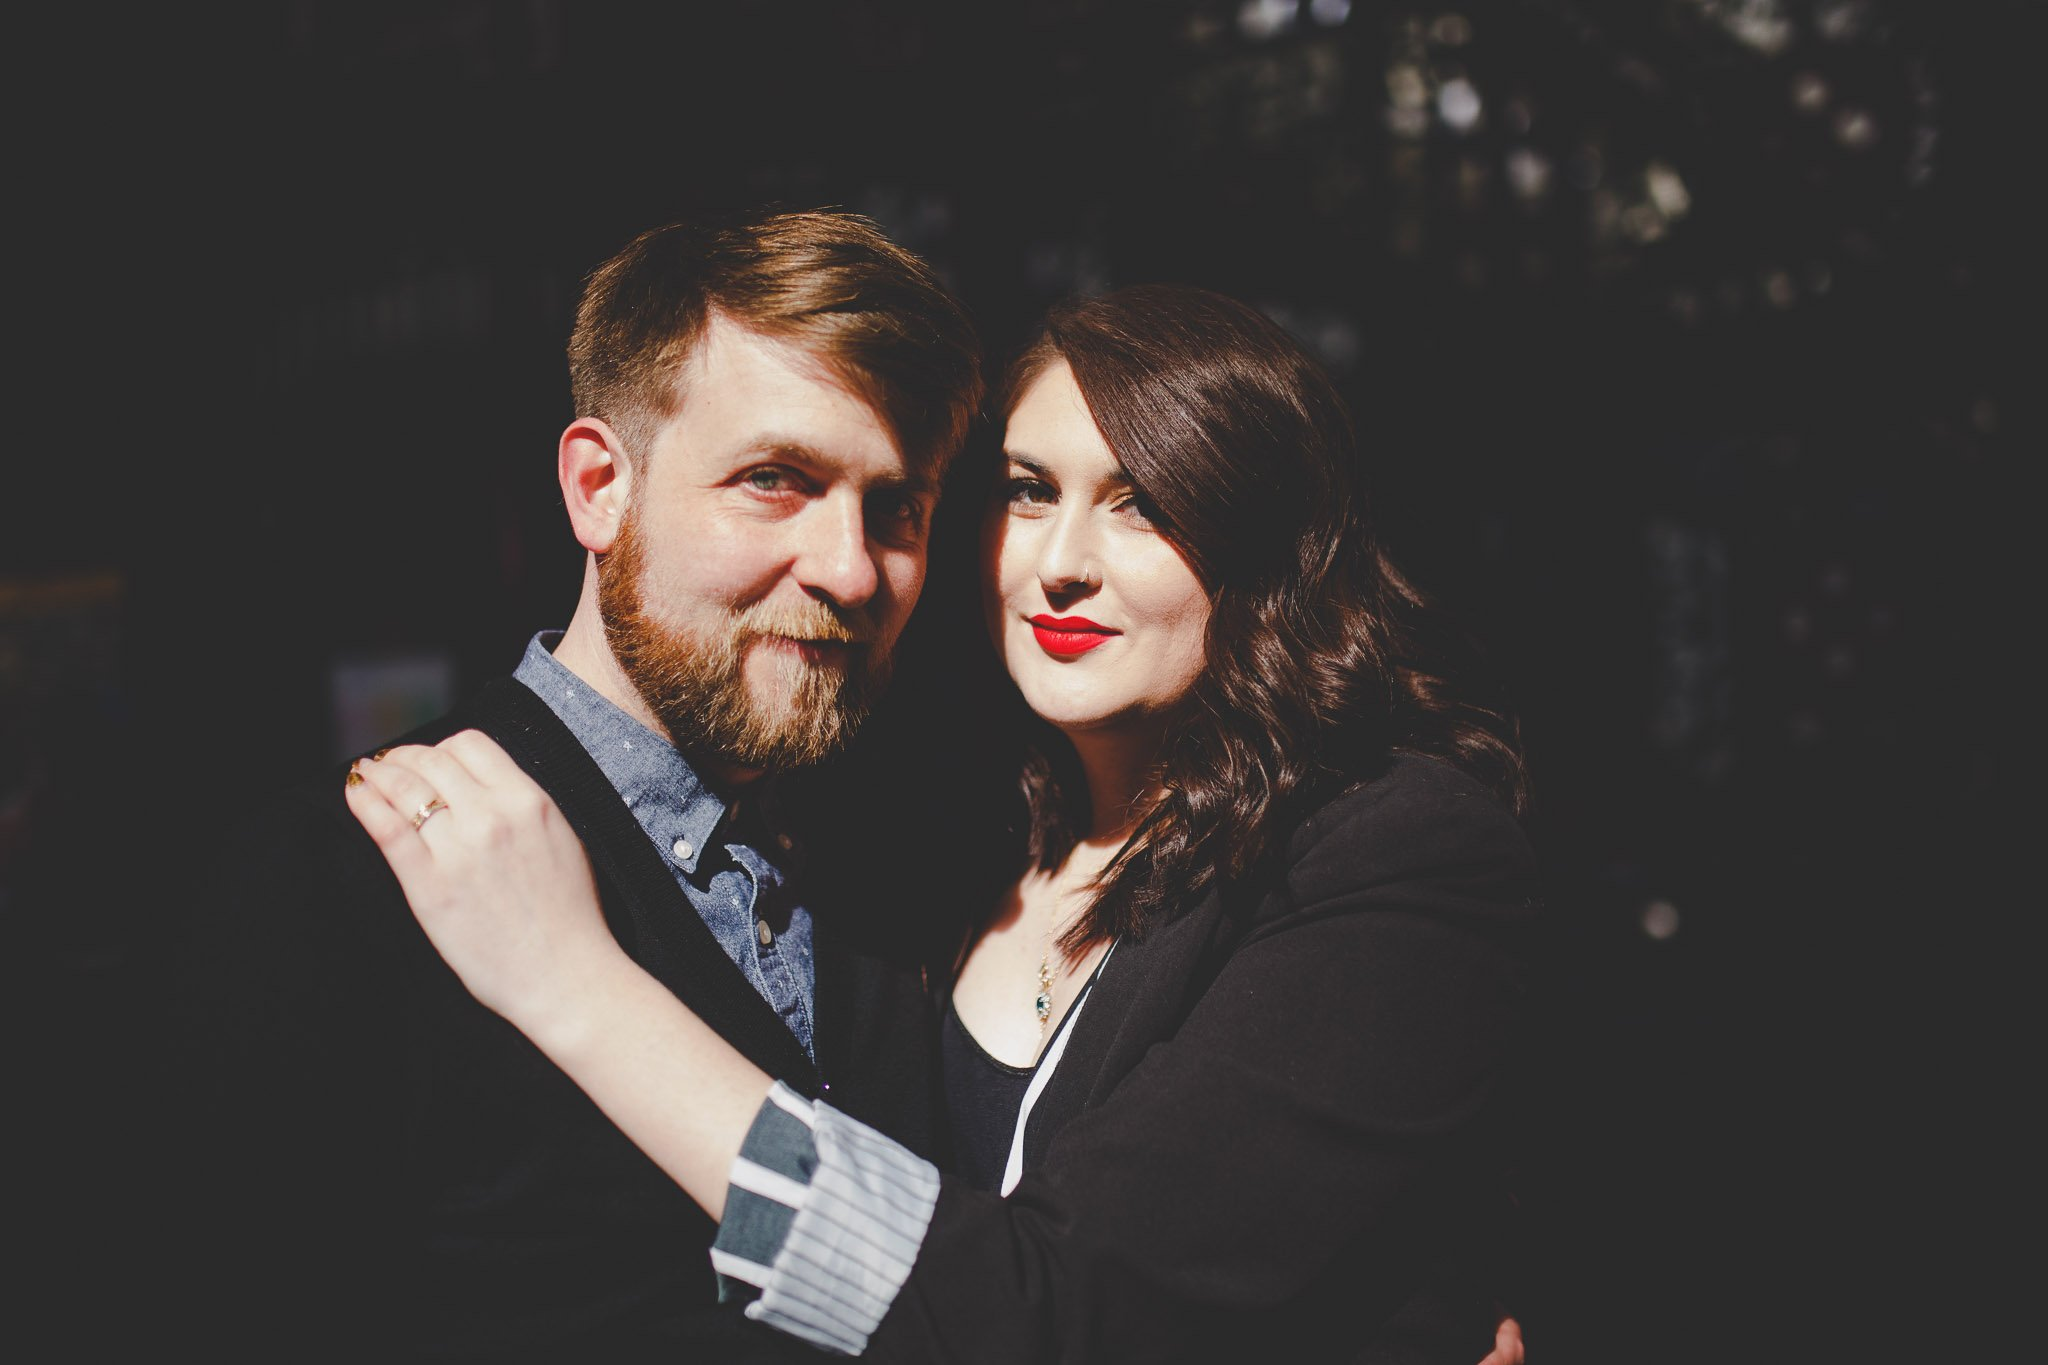 A newly married couple pose for their wedding portrait in Guildhall London. They sit hugging and laughing in front of a stained glassed window. Photography by thatthingyoupluck.